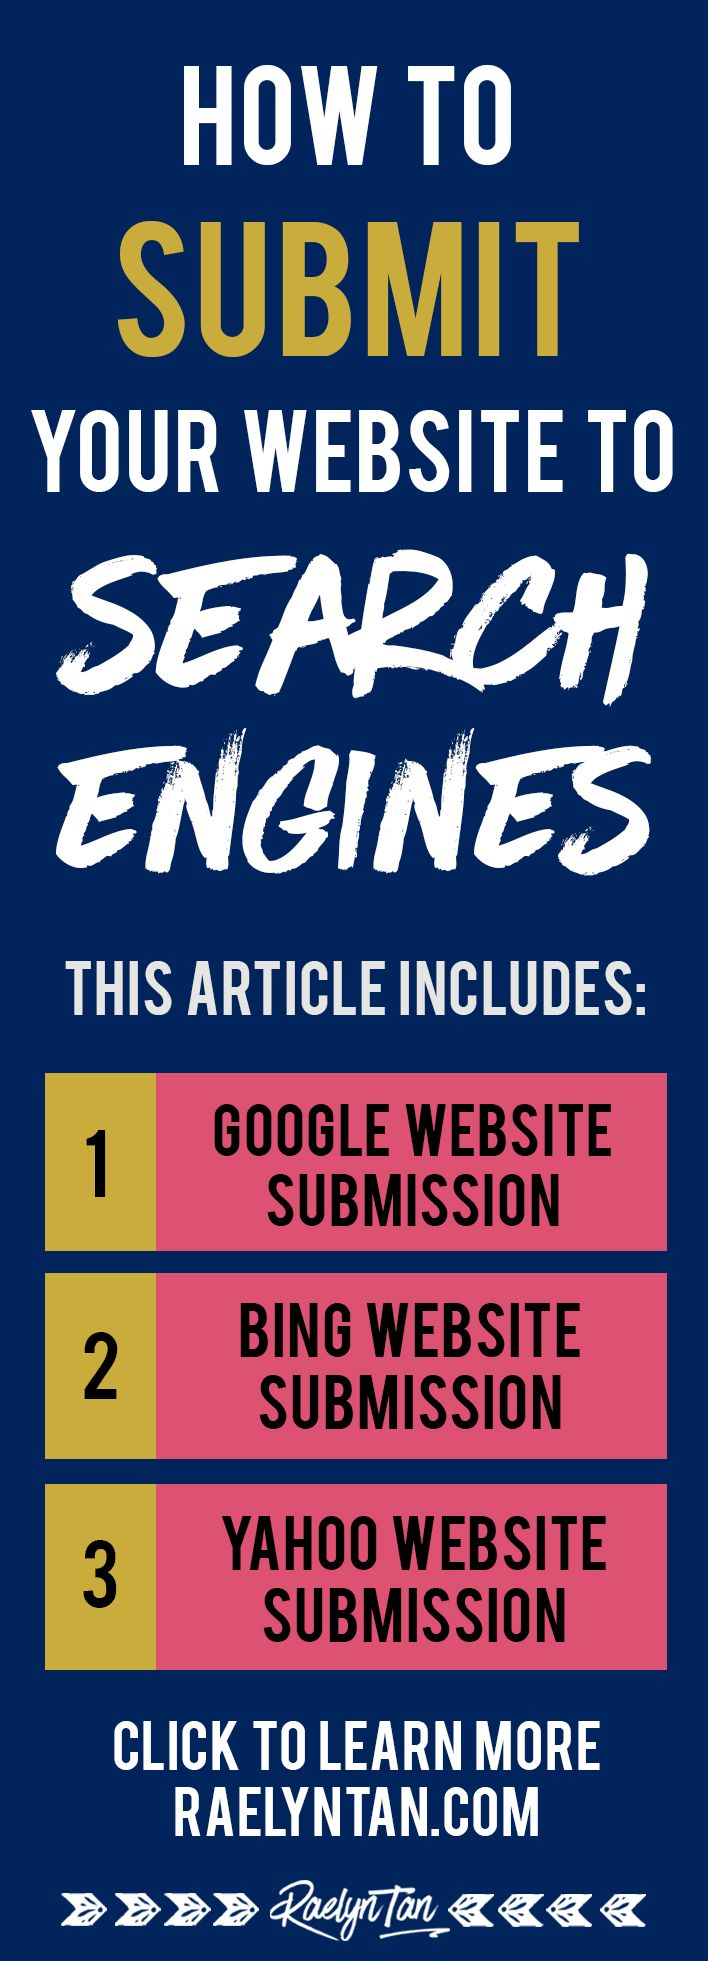 Want to submit your website to search engines? Here are simple, step-by-step instructions to submit your website to Google, Bing and Yahoo! Get your blog indexed real quick.